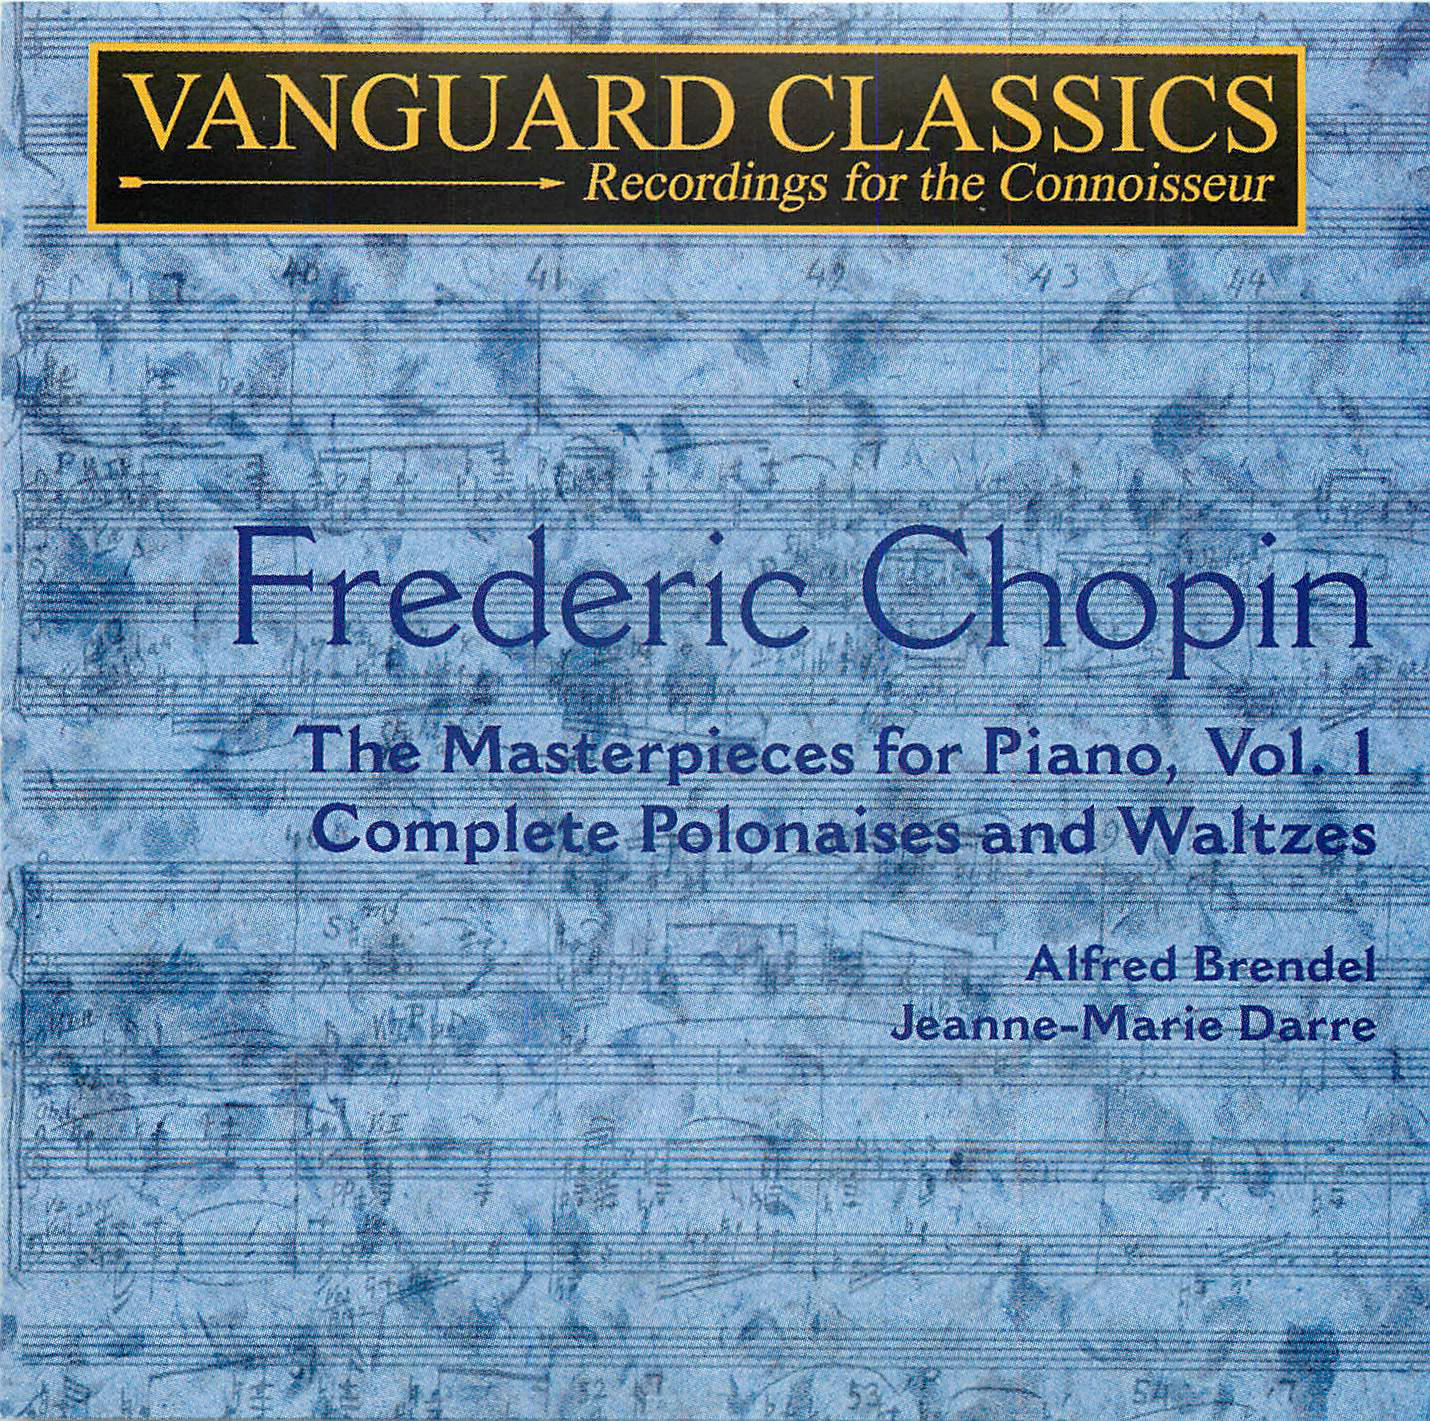 The Masterpieces for Piano, Vol. 1 (CD 2) | Alexander Street, a ...